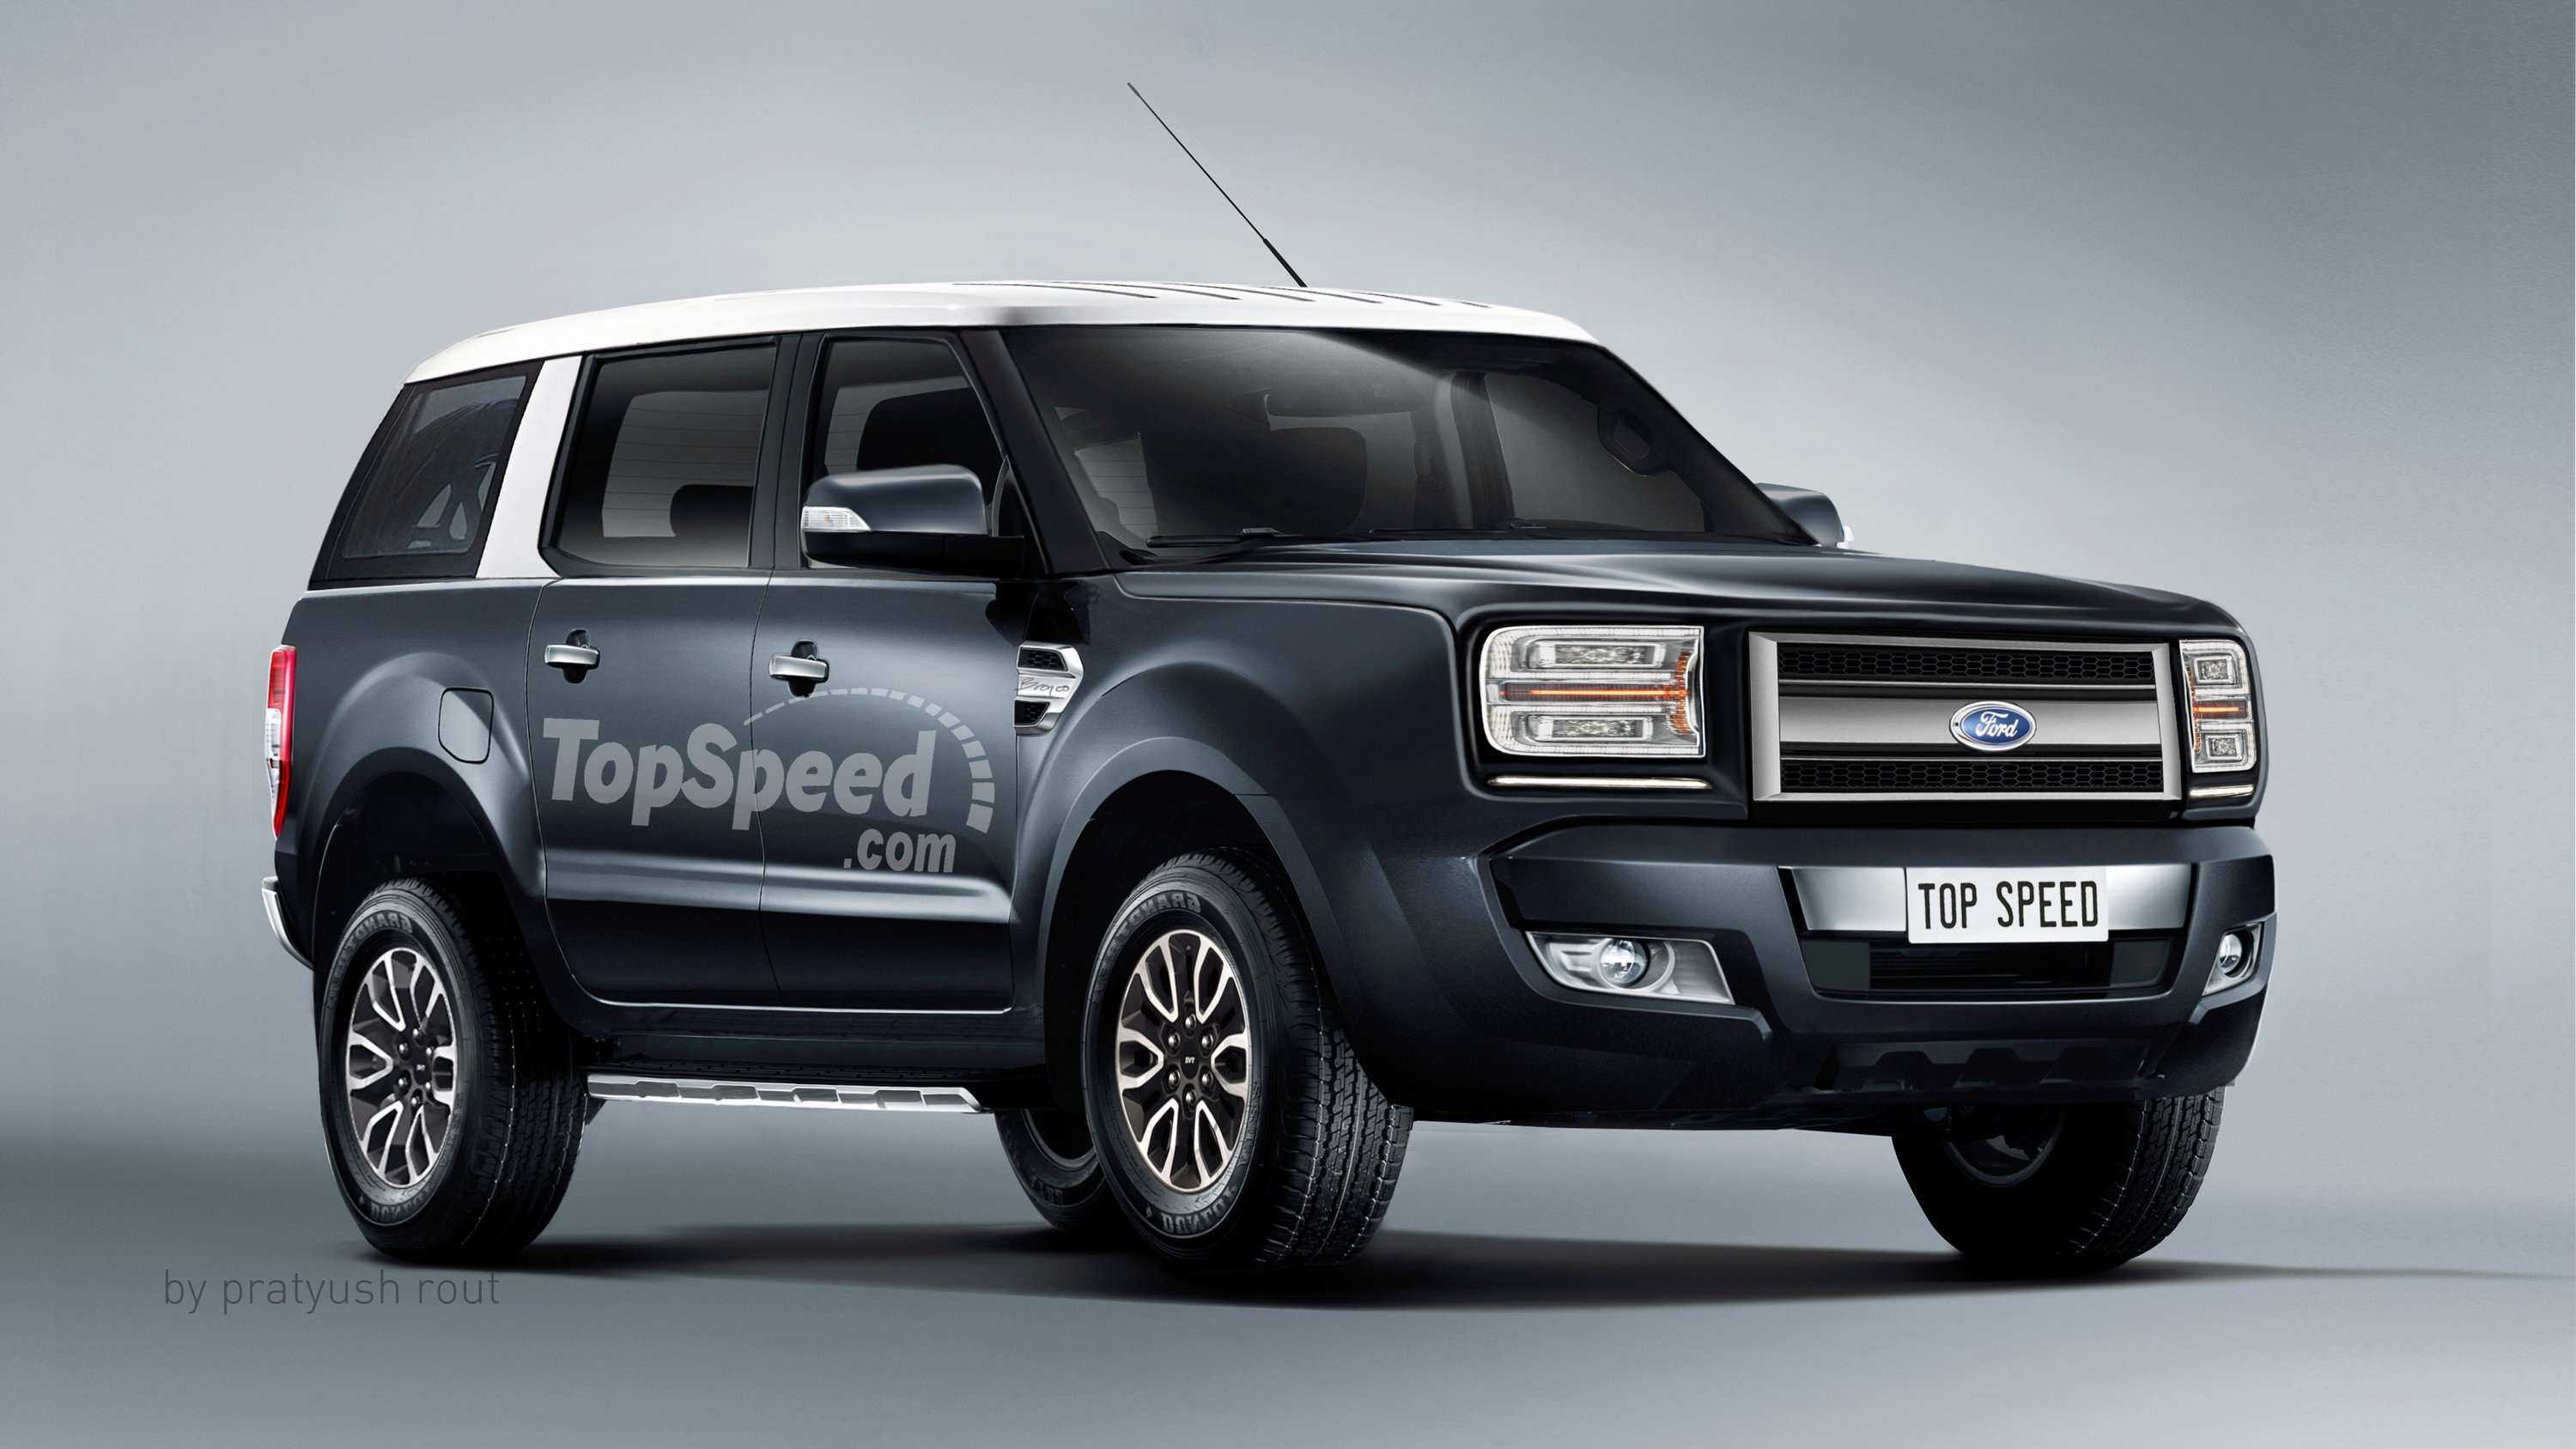 51 The Best 2020 Ford Everest Configurations